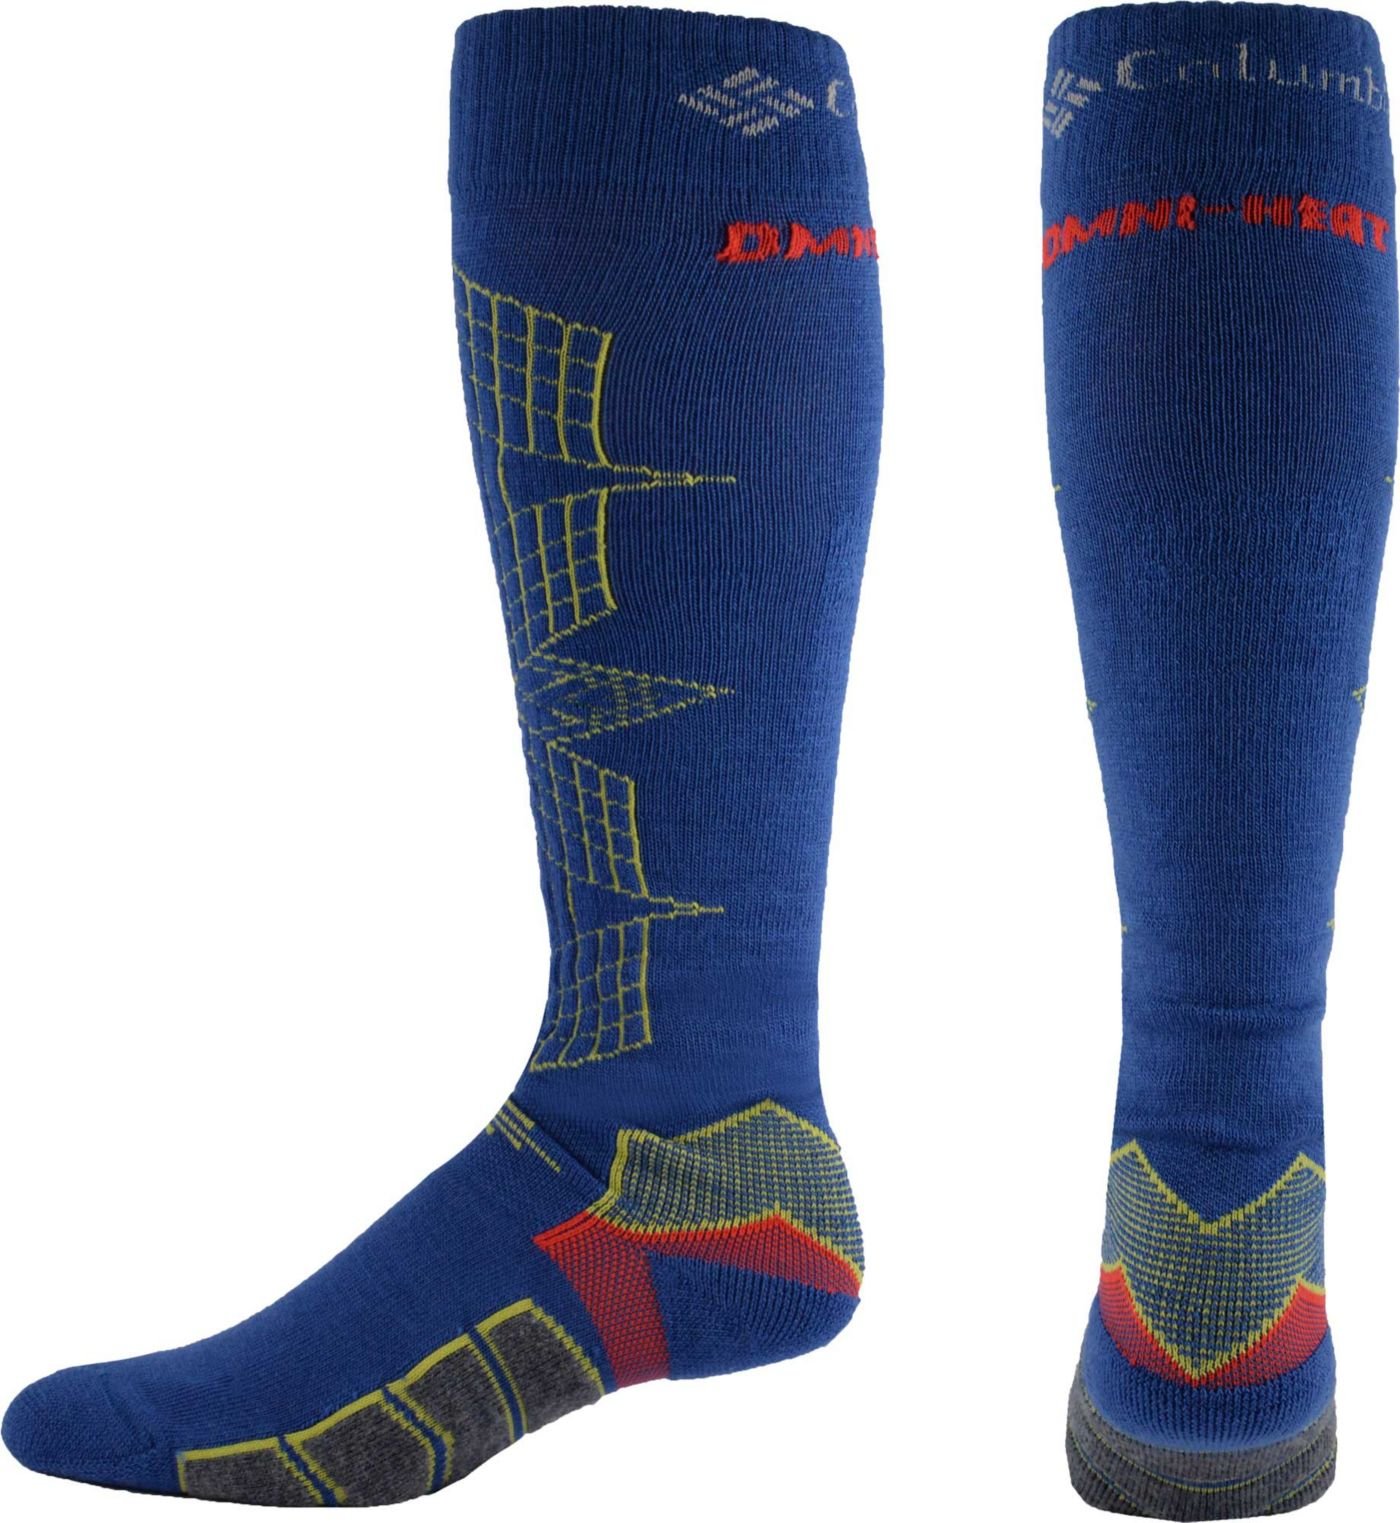 Columbia Omni-Heat Ski Optical Grid Over-the-Calf Socks